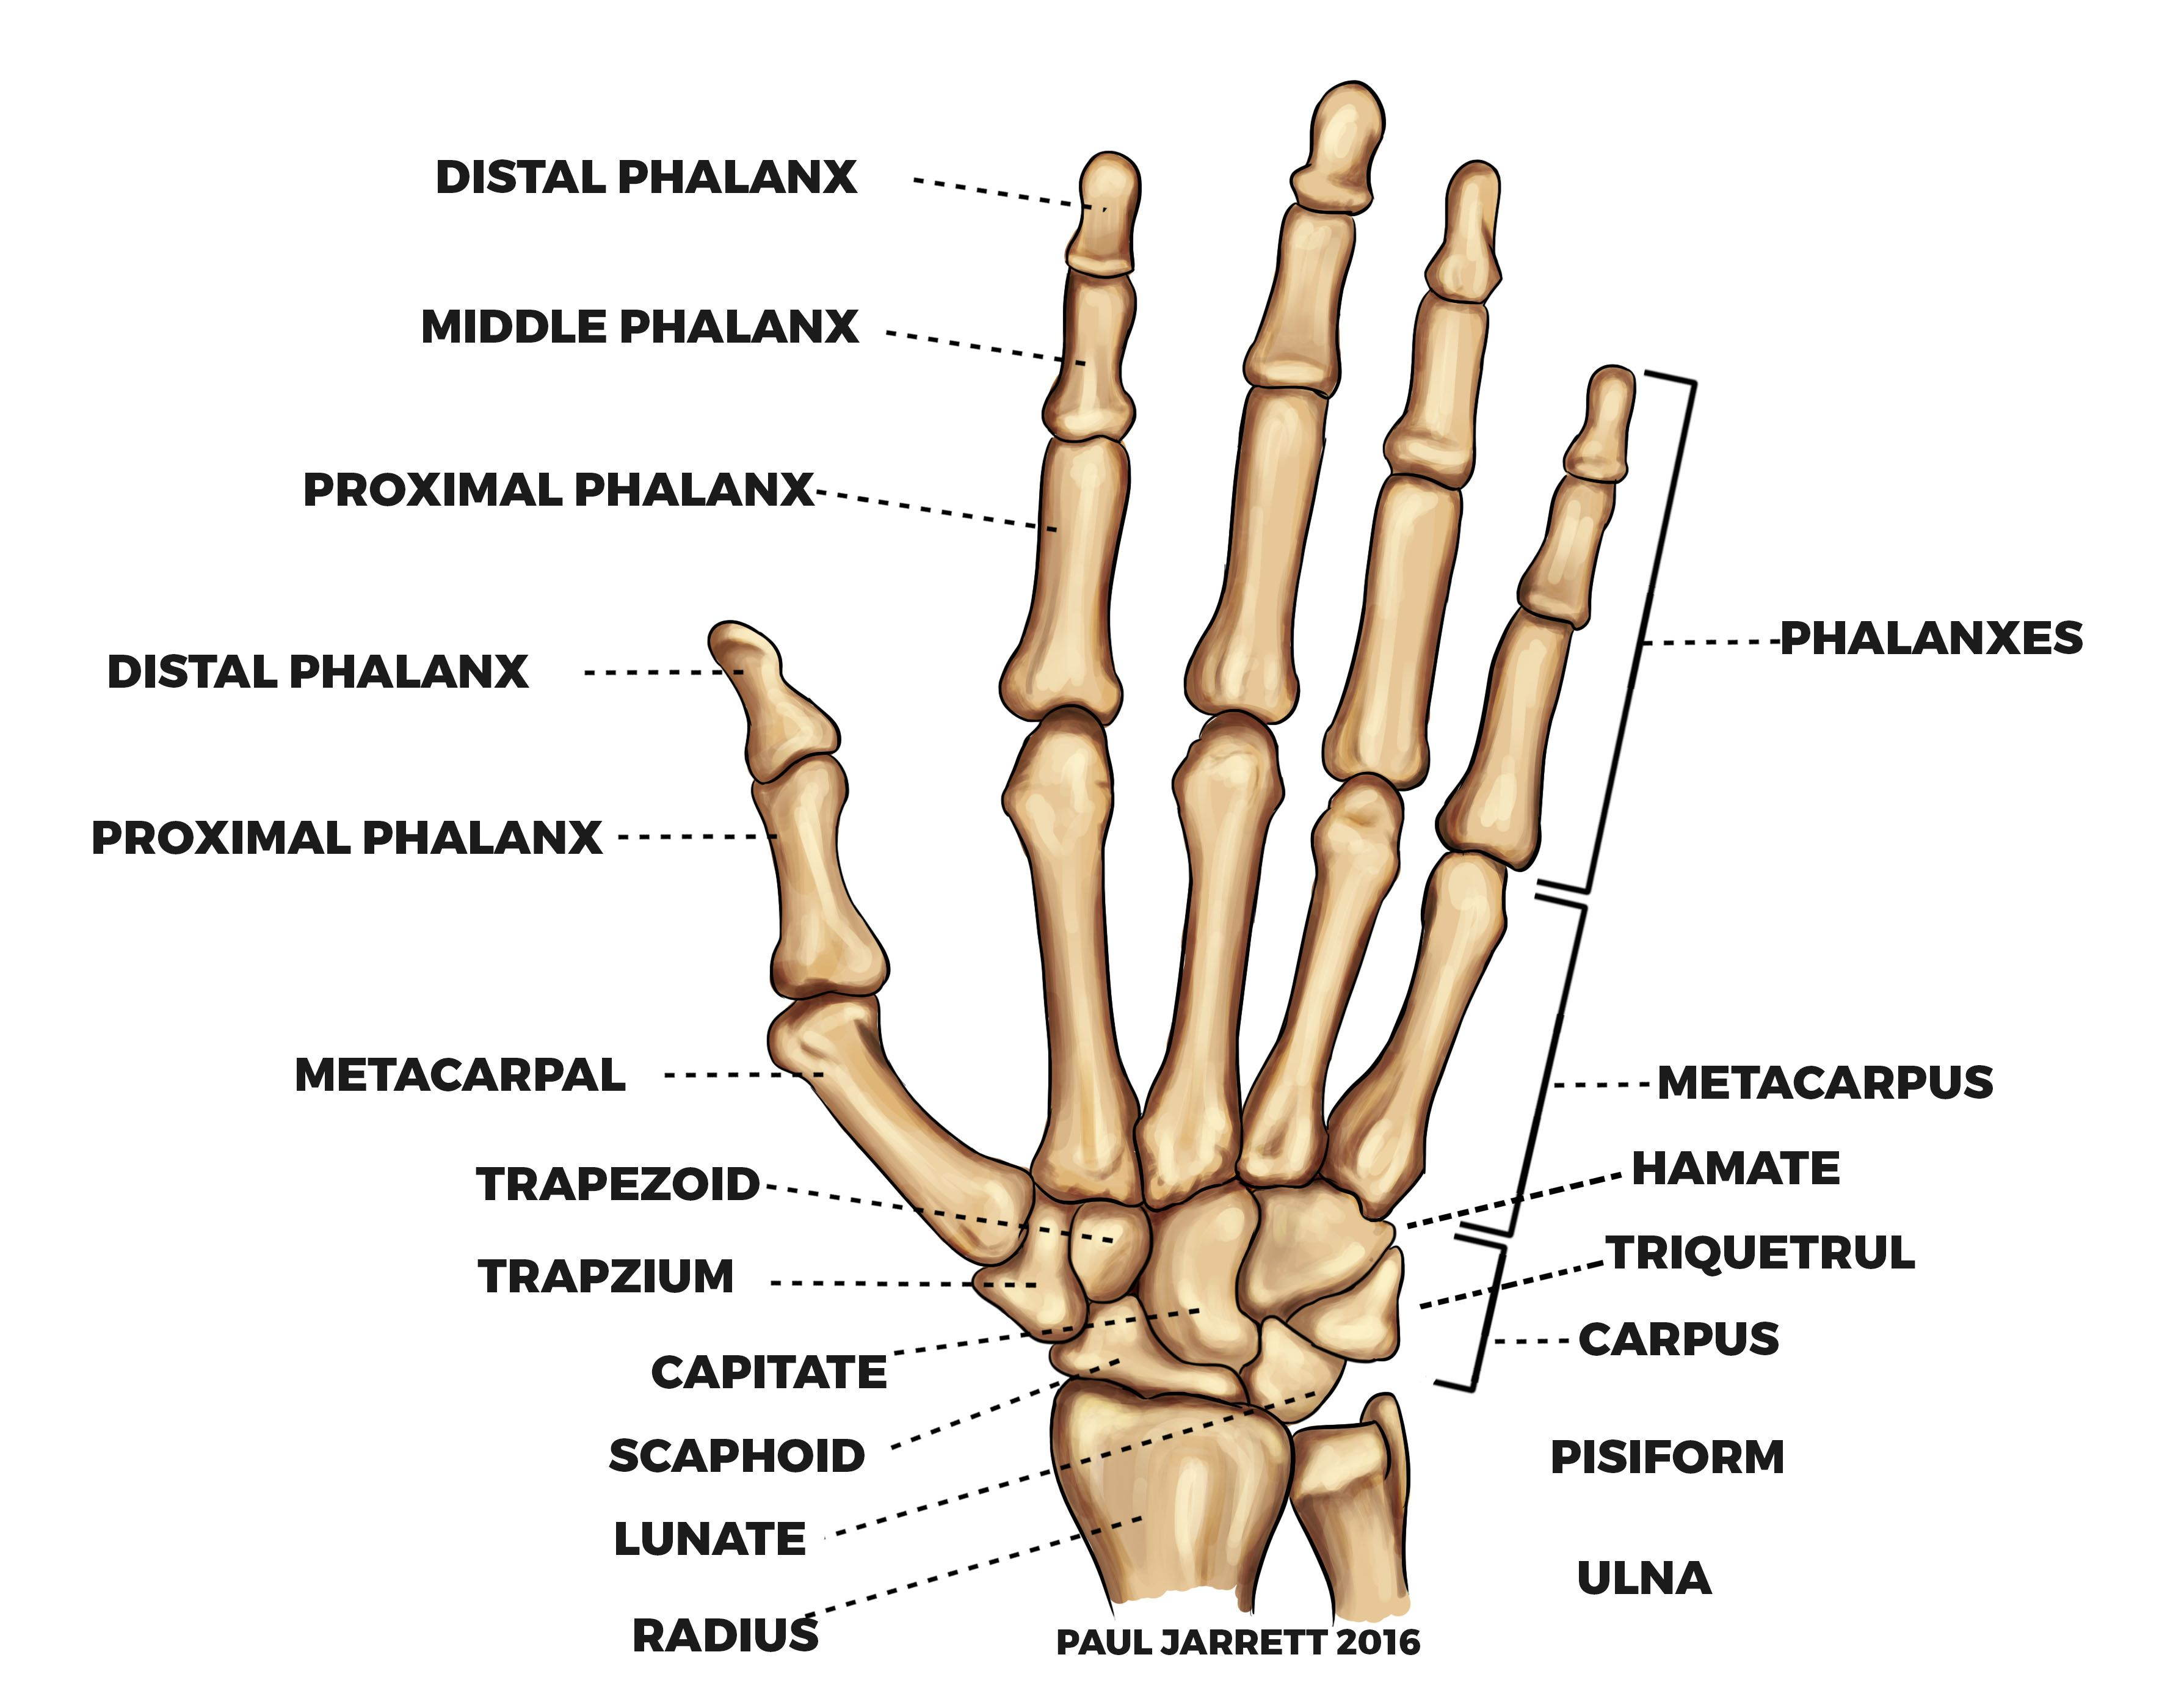 Pin By Meshaloof Meshal On My Saves In 2020 Anatomy Bones Hand Anatomy Hand Bone